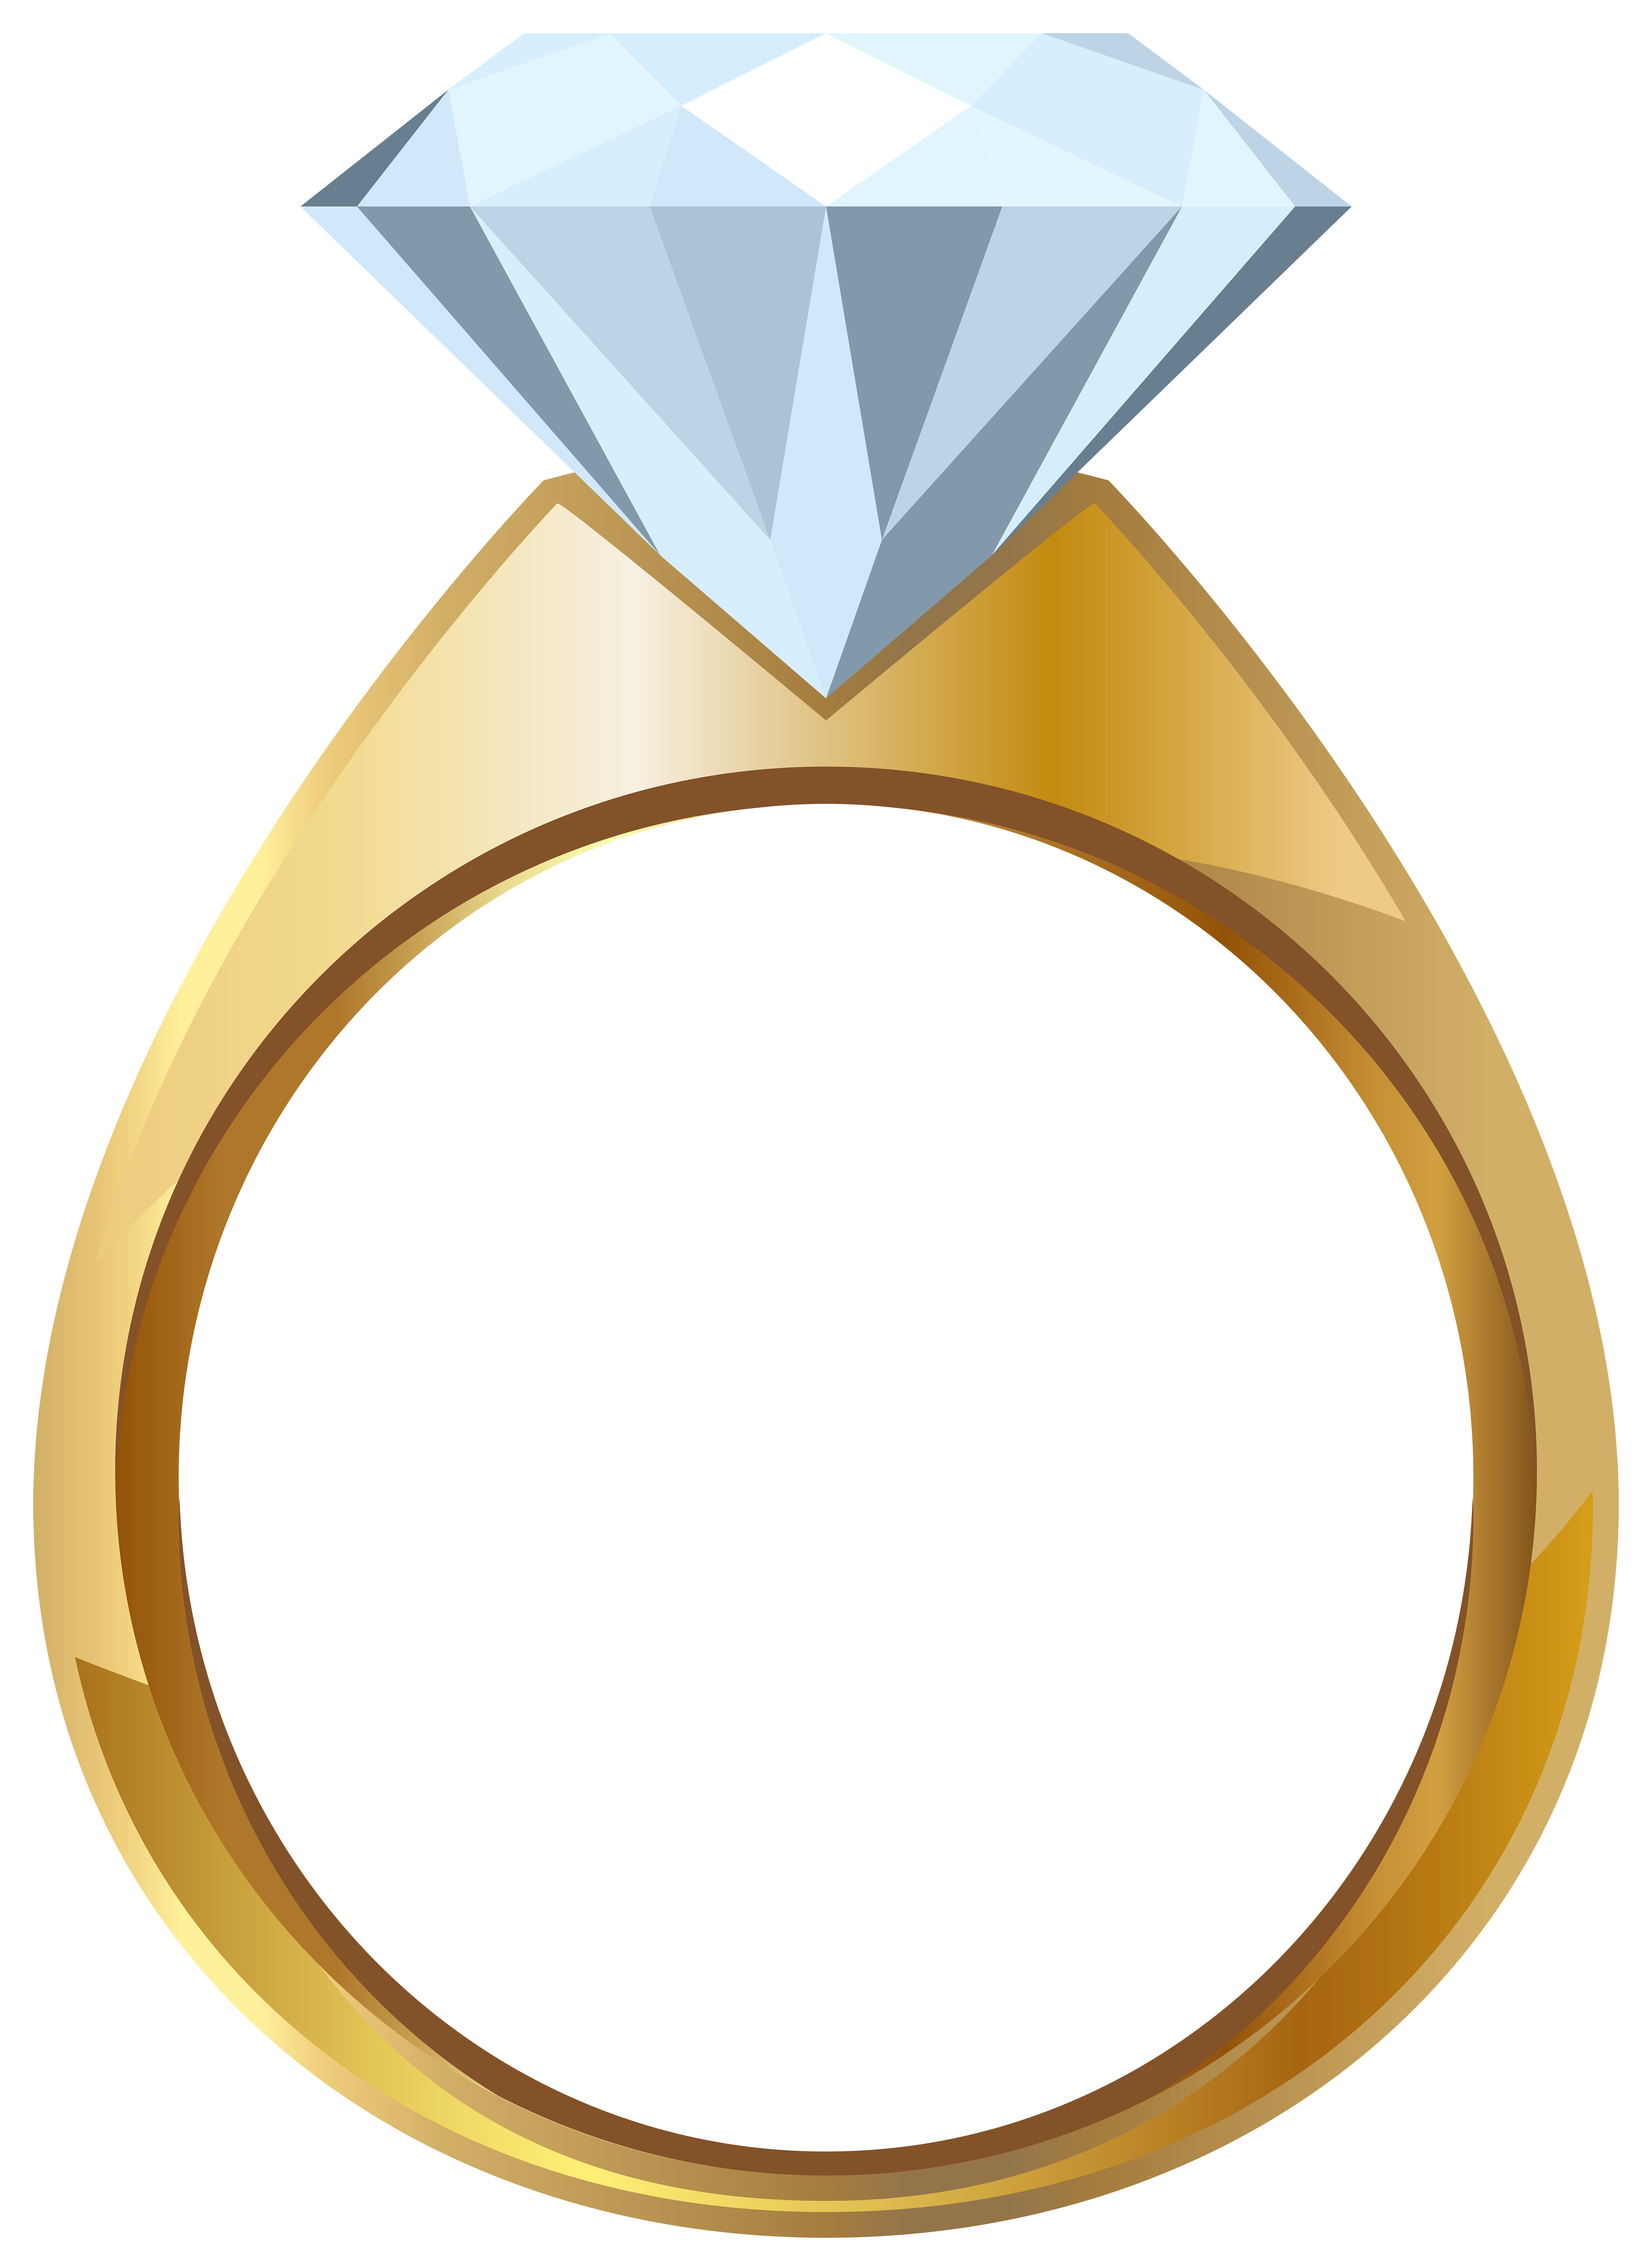 Gems clipart engagement ring Clip Art High Clip PNG